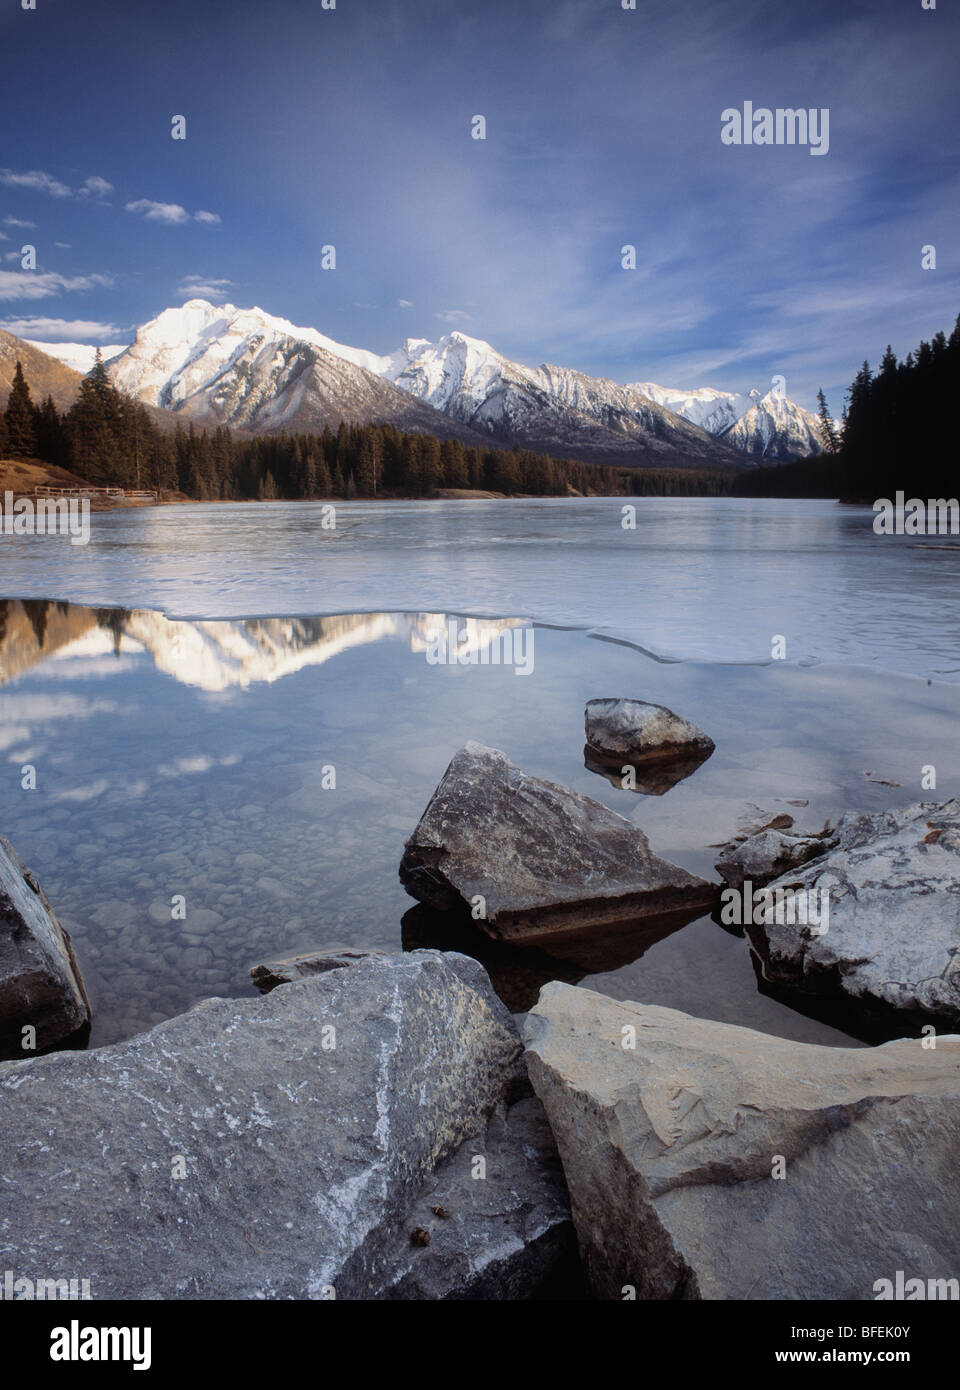 Johnson Lake and the Fairholme Range, Banff National Park, Alberta, Canada - Stock Image